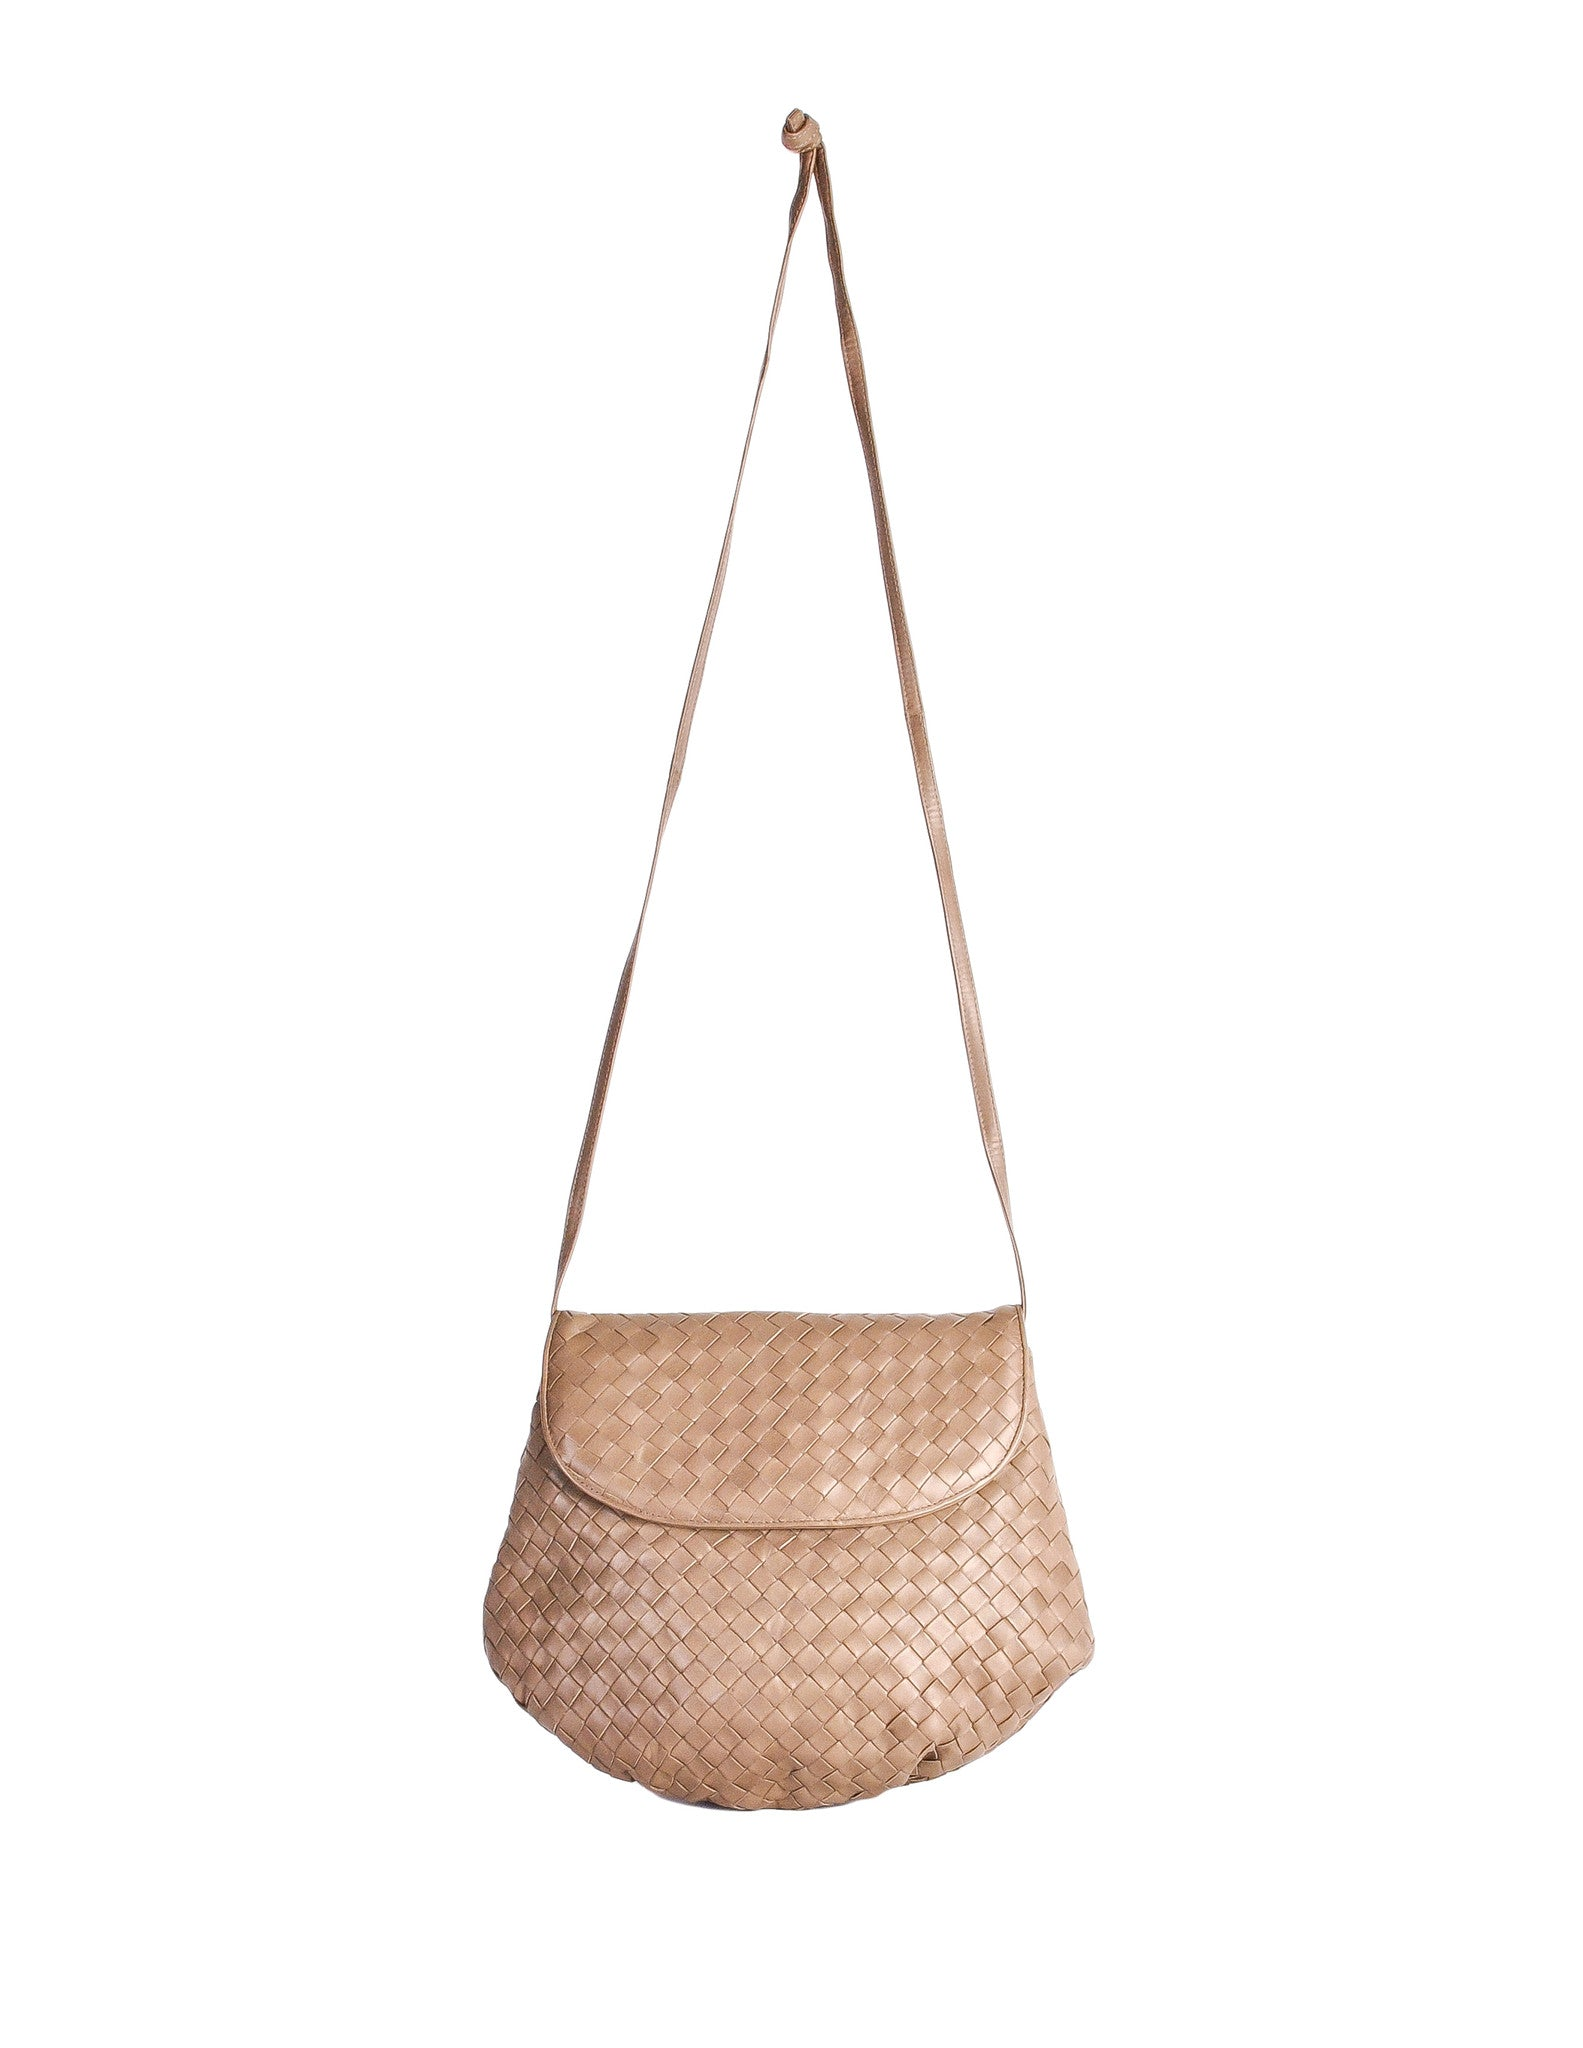 Bottega Veneta Vintage Intrecciato Mushroom Brown Woven Leather Crossbody Bag - Amarcord Vintage Fashion  - 1